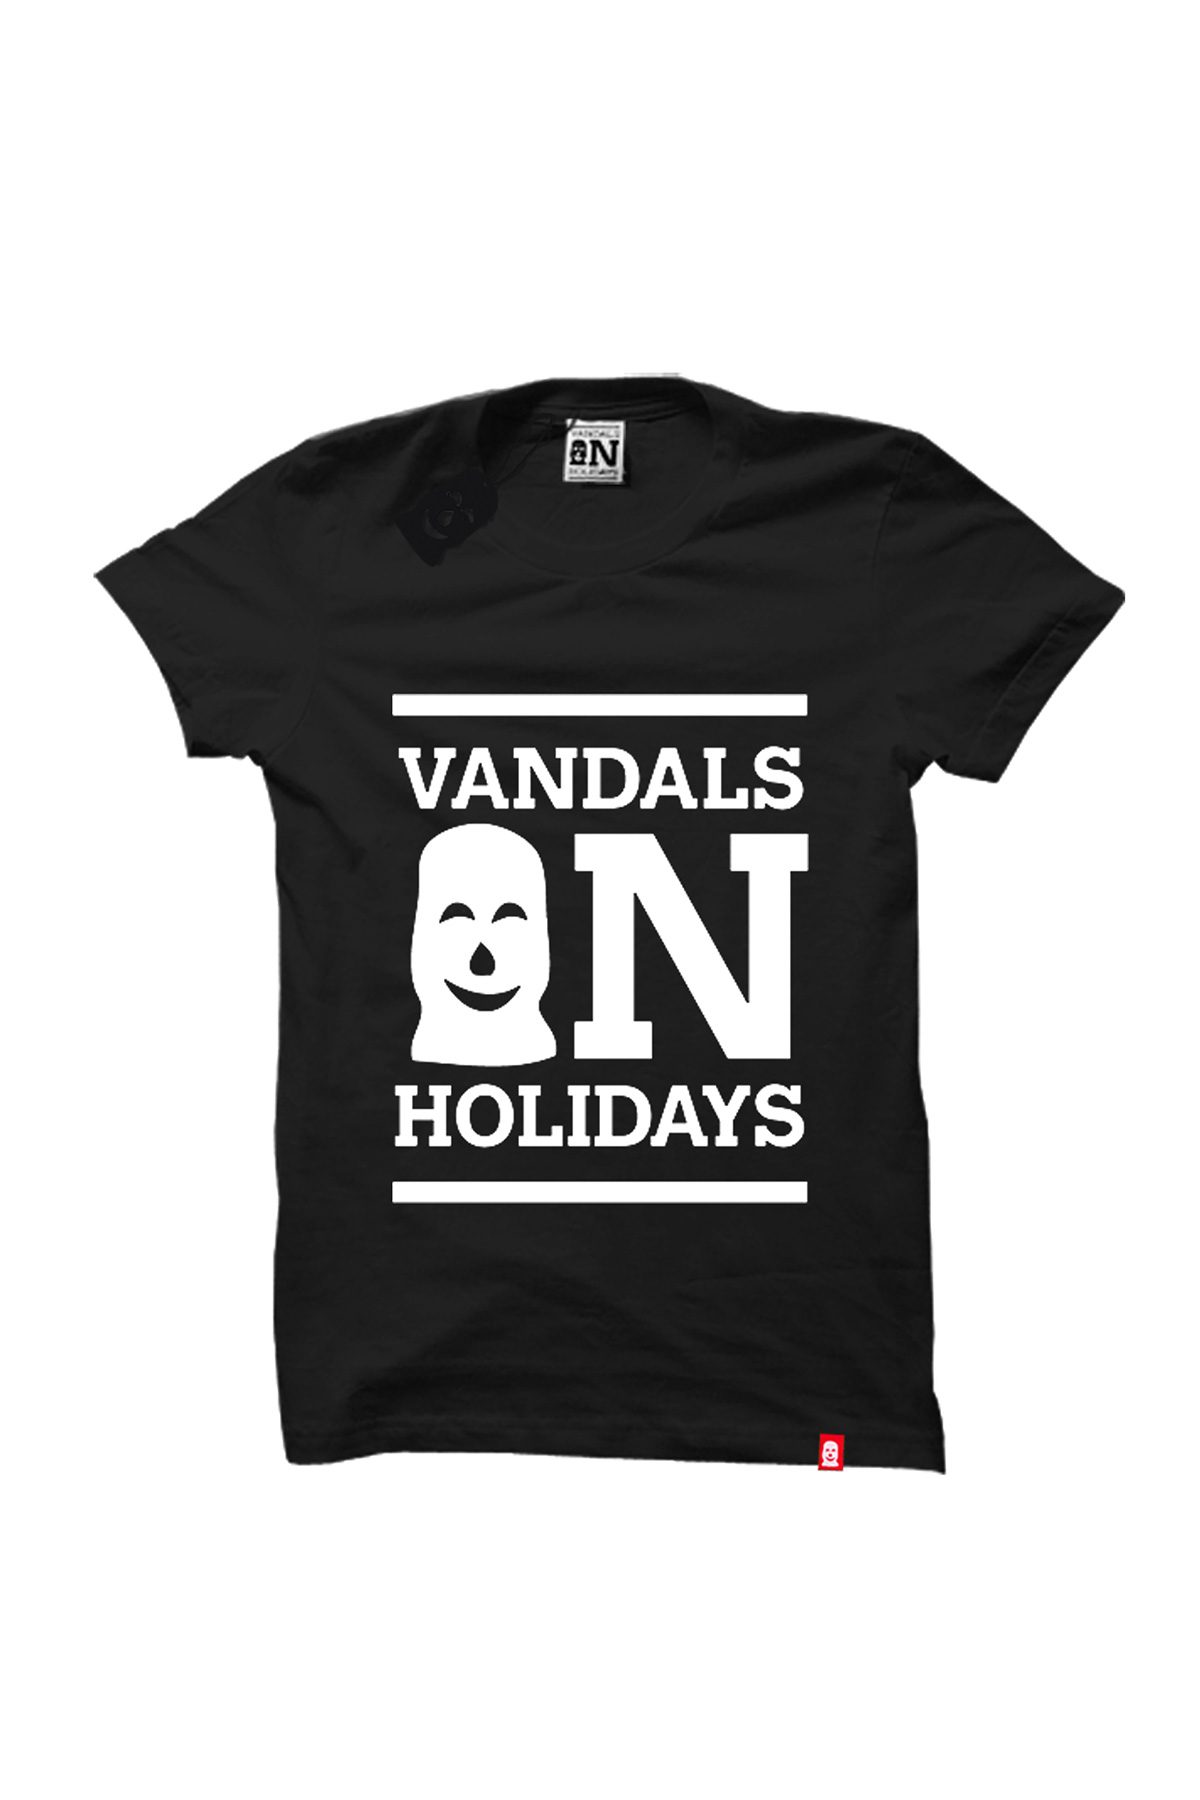 Vandals On Holidays CLASSIC LOGO T-Shirt